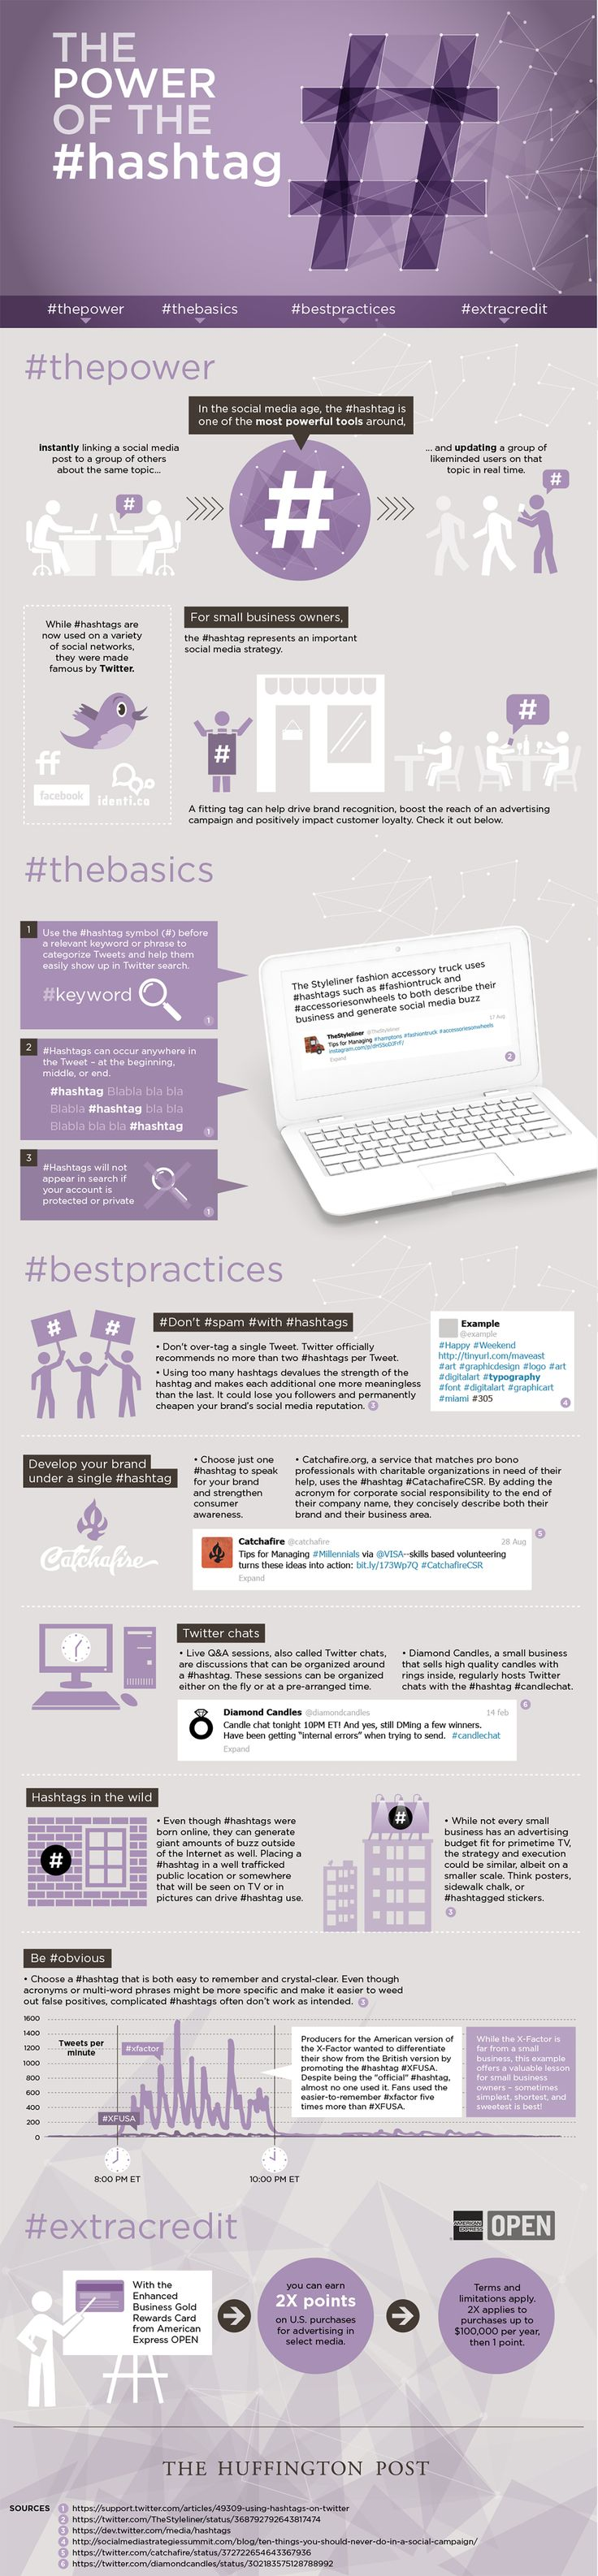 infographic on hashtags